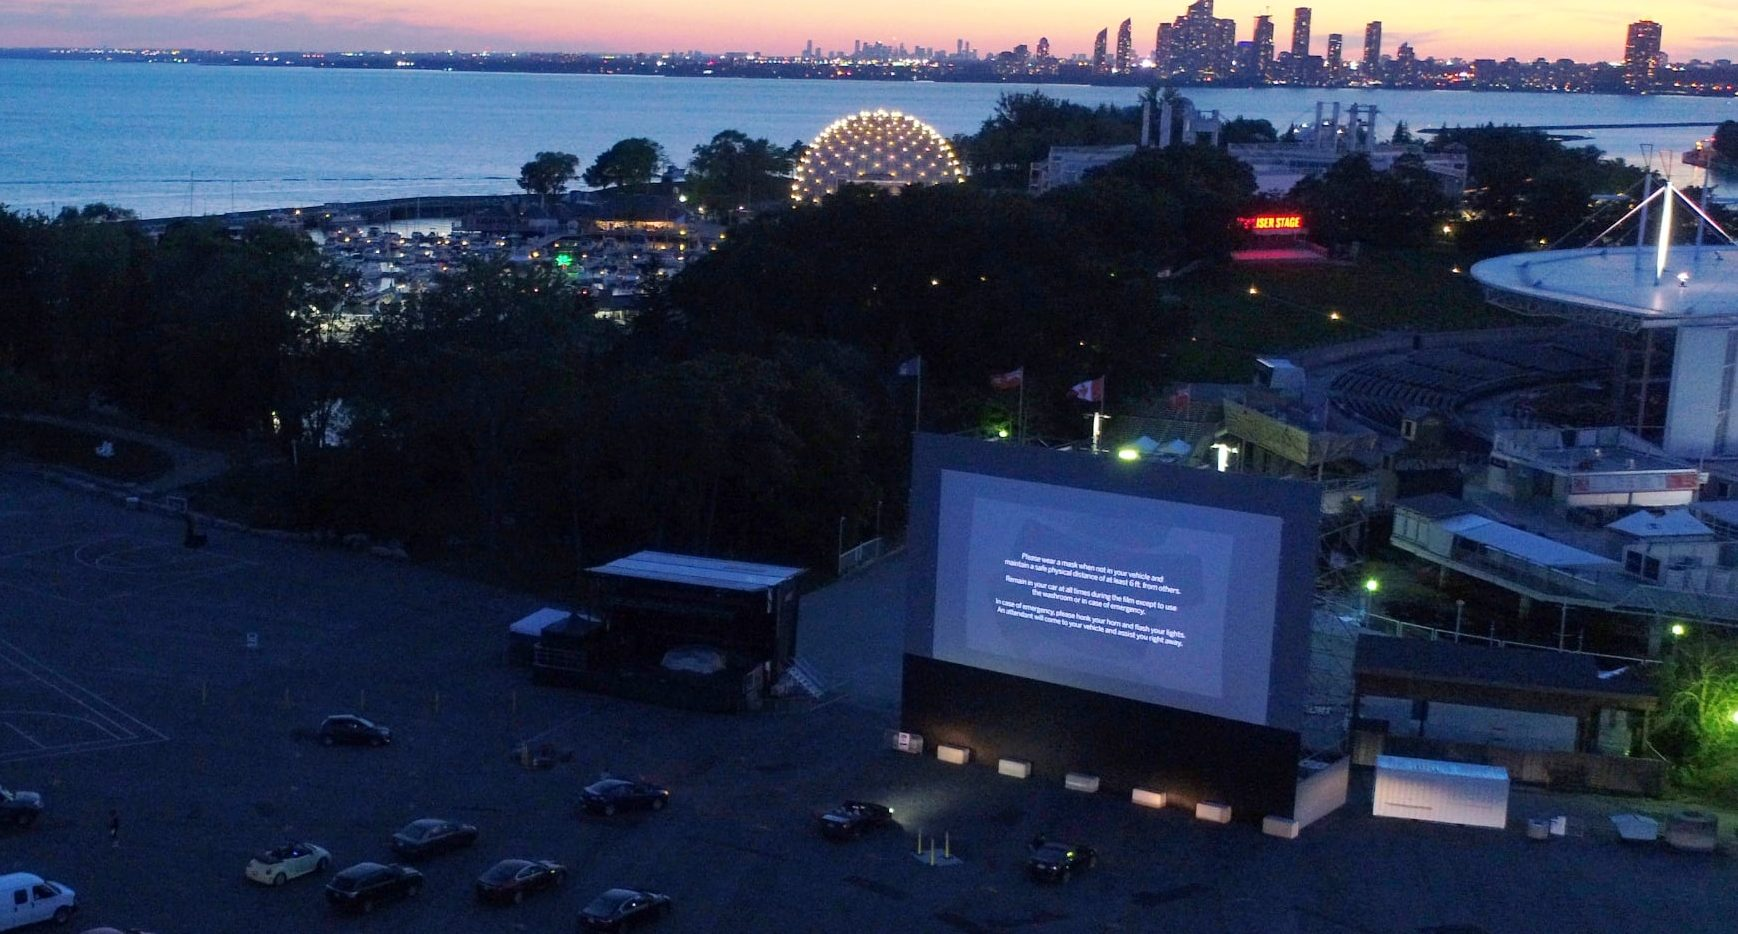 Ontario Place has a haunted drive-in movie experience for spooky season